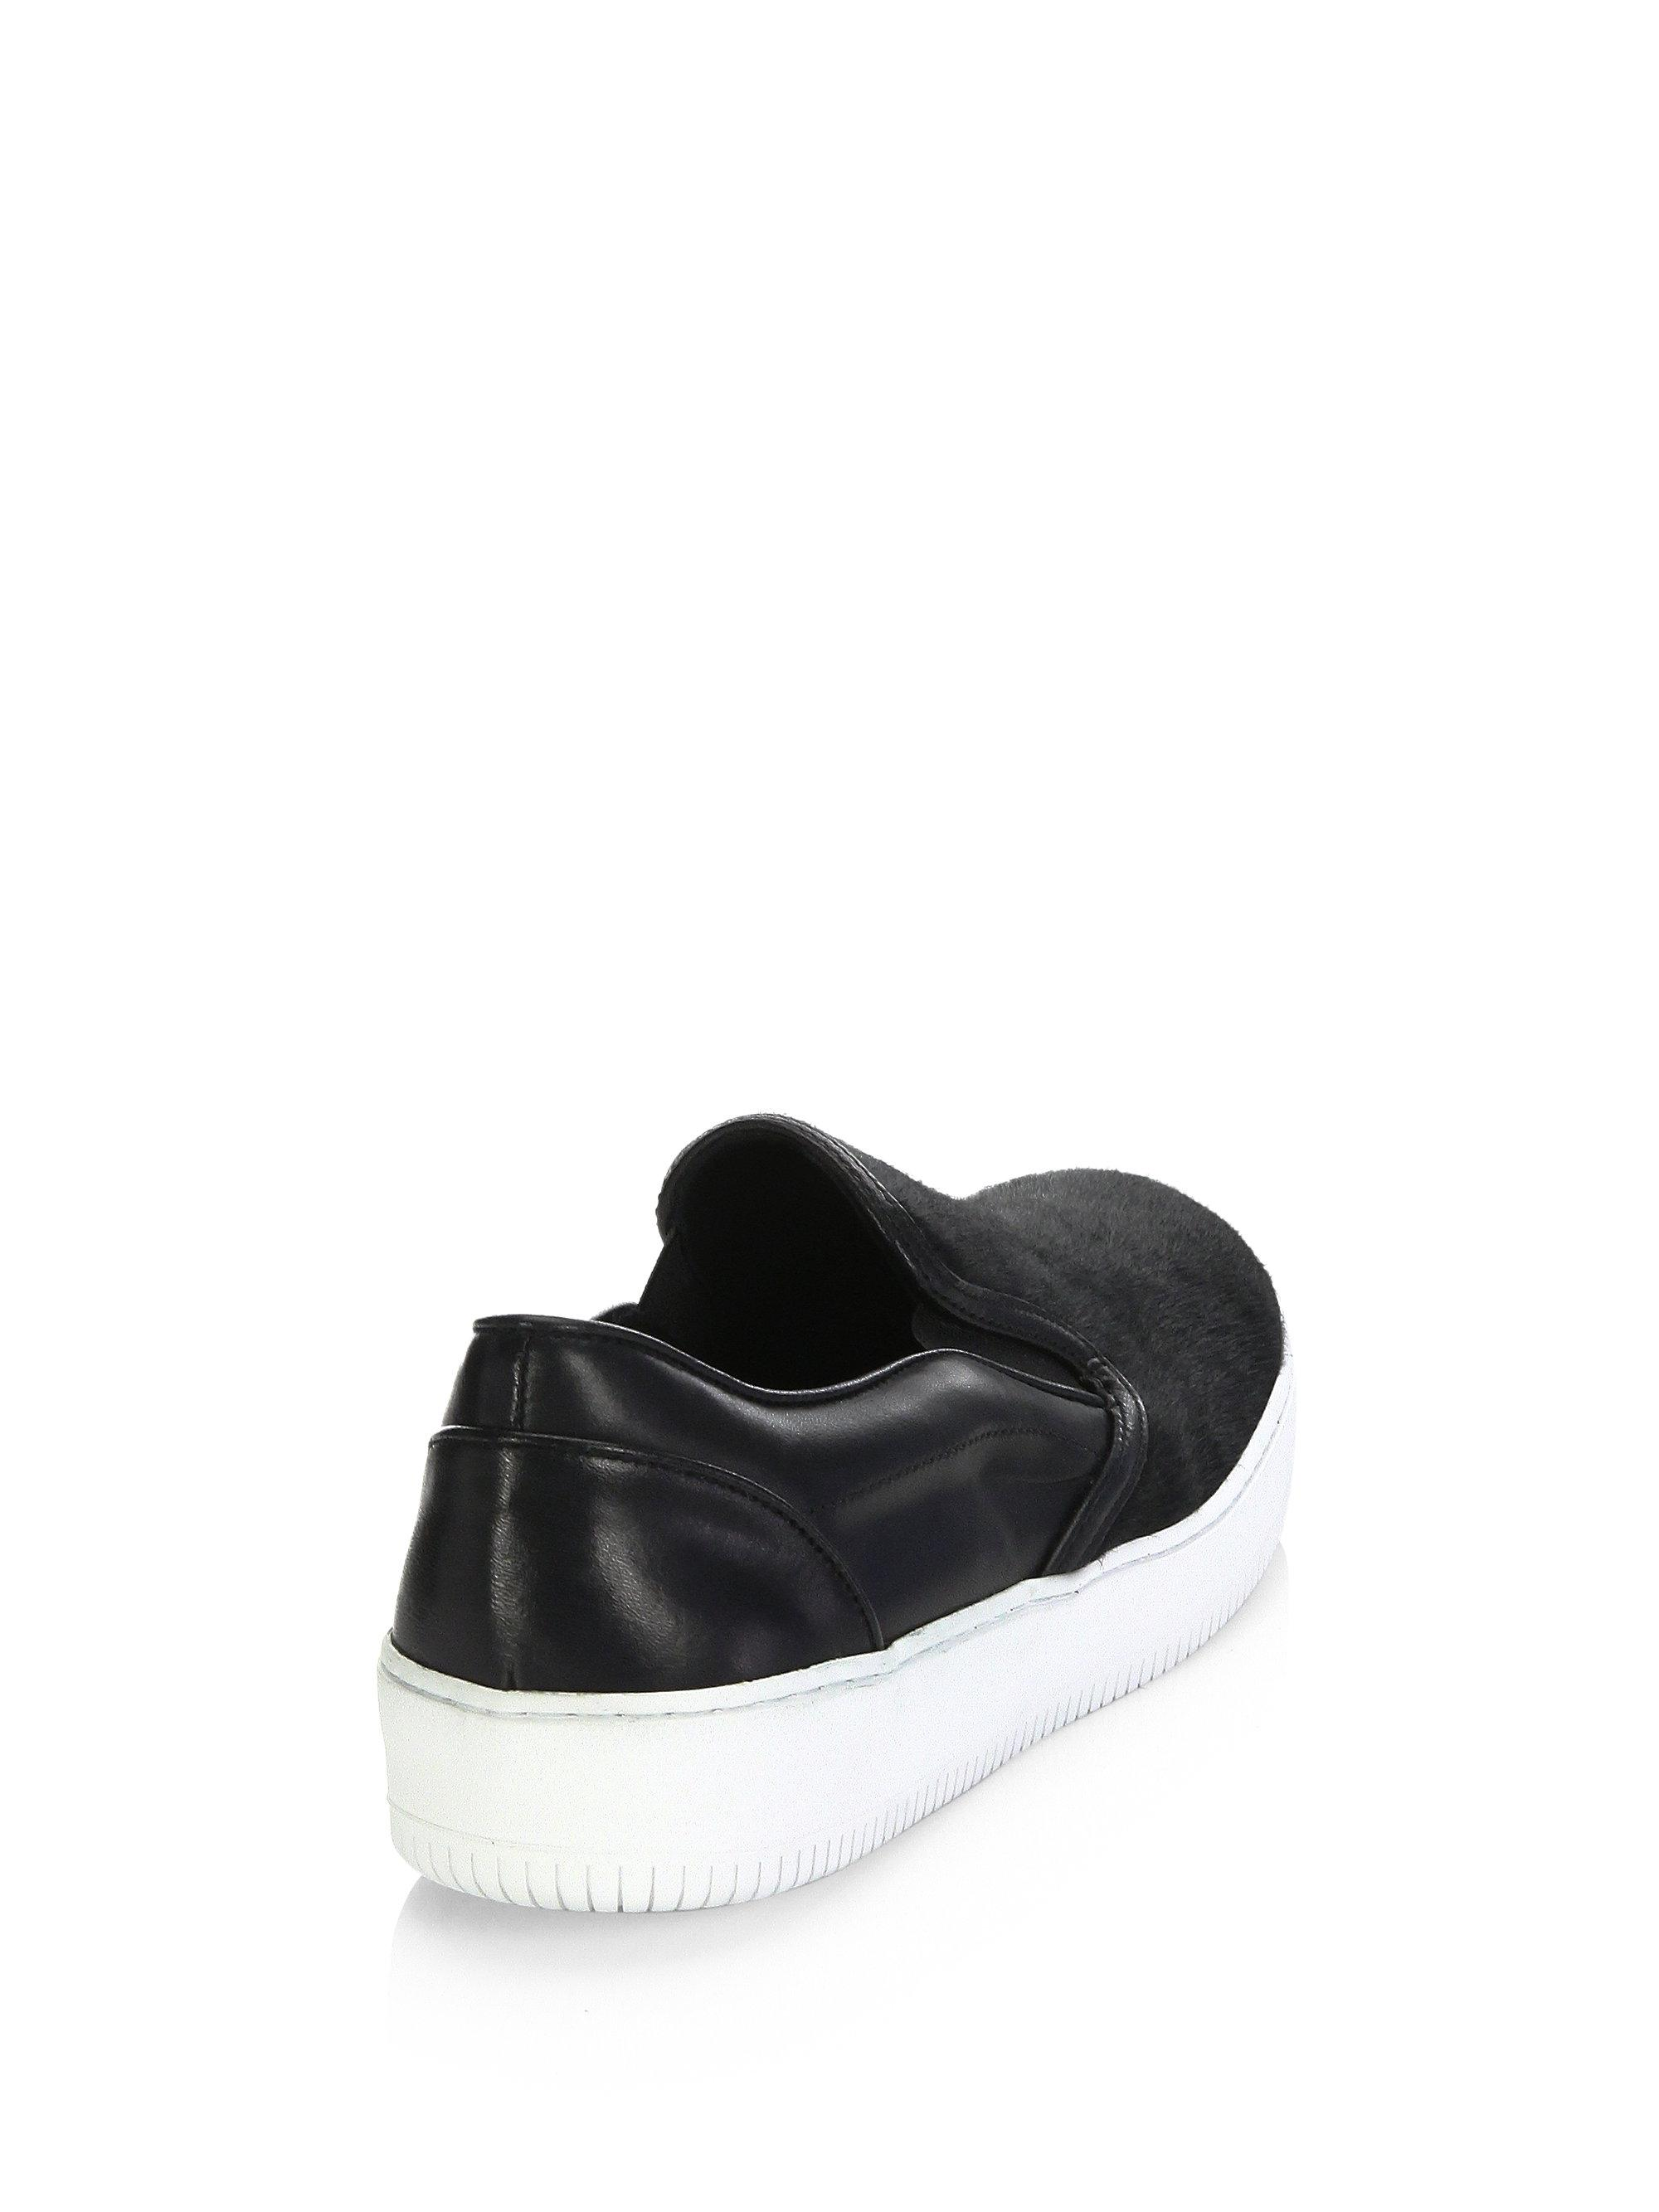 Saks Fifth Avenue COLLECTION Pony Hair Slip-On Sneakers